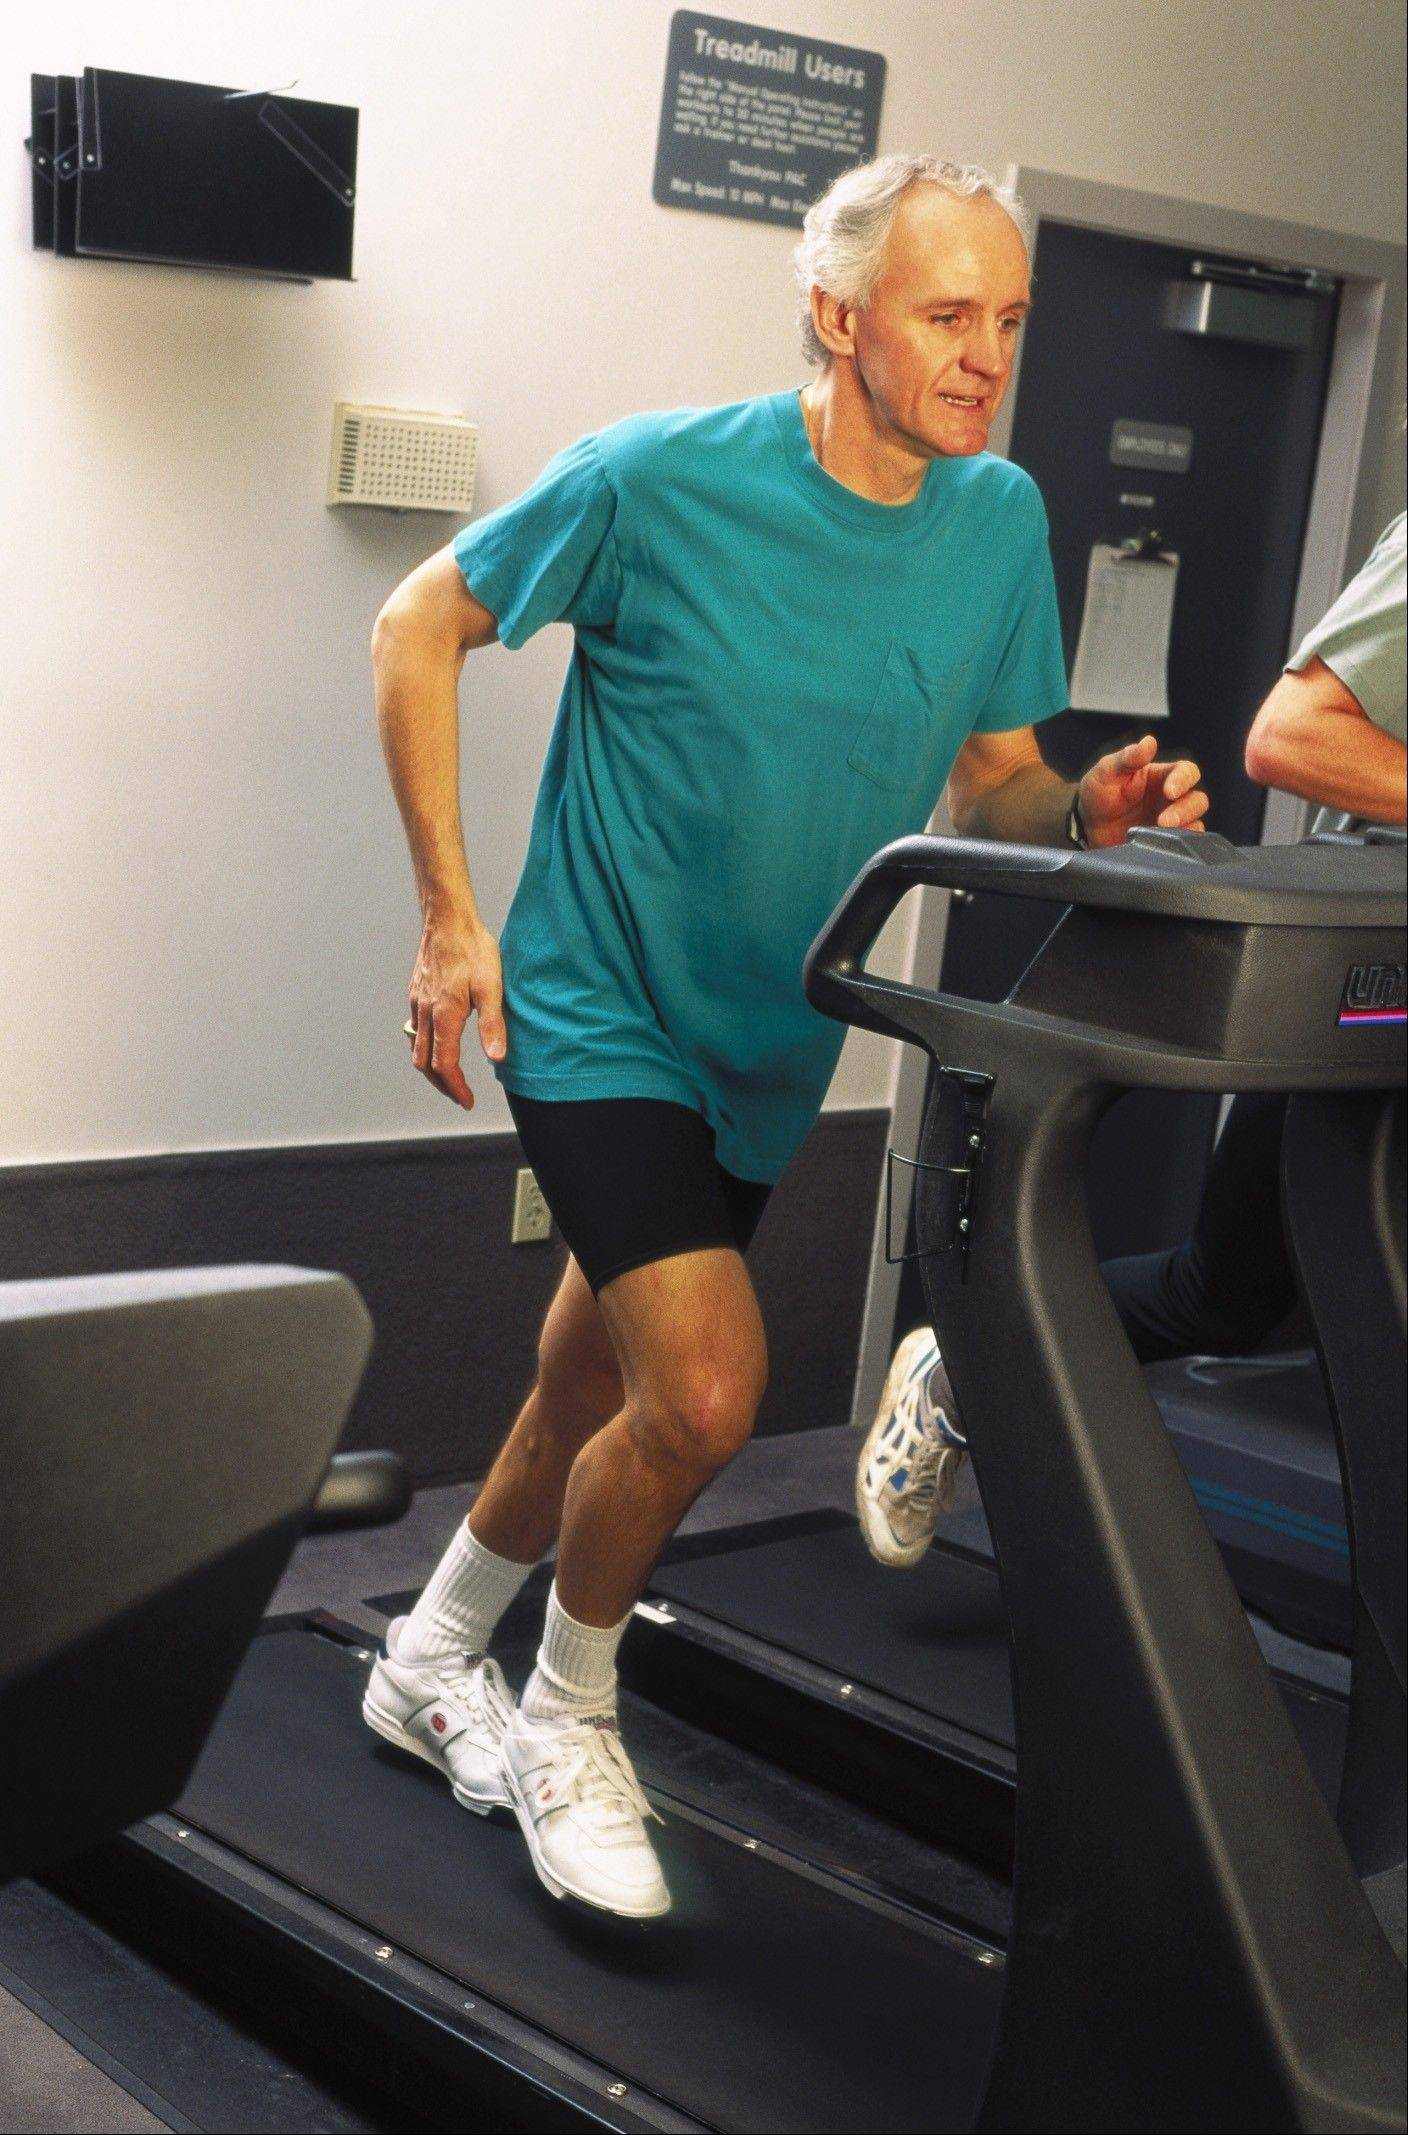 Several new studies suggest that simple exercises may improve memory in older adults.